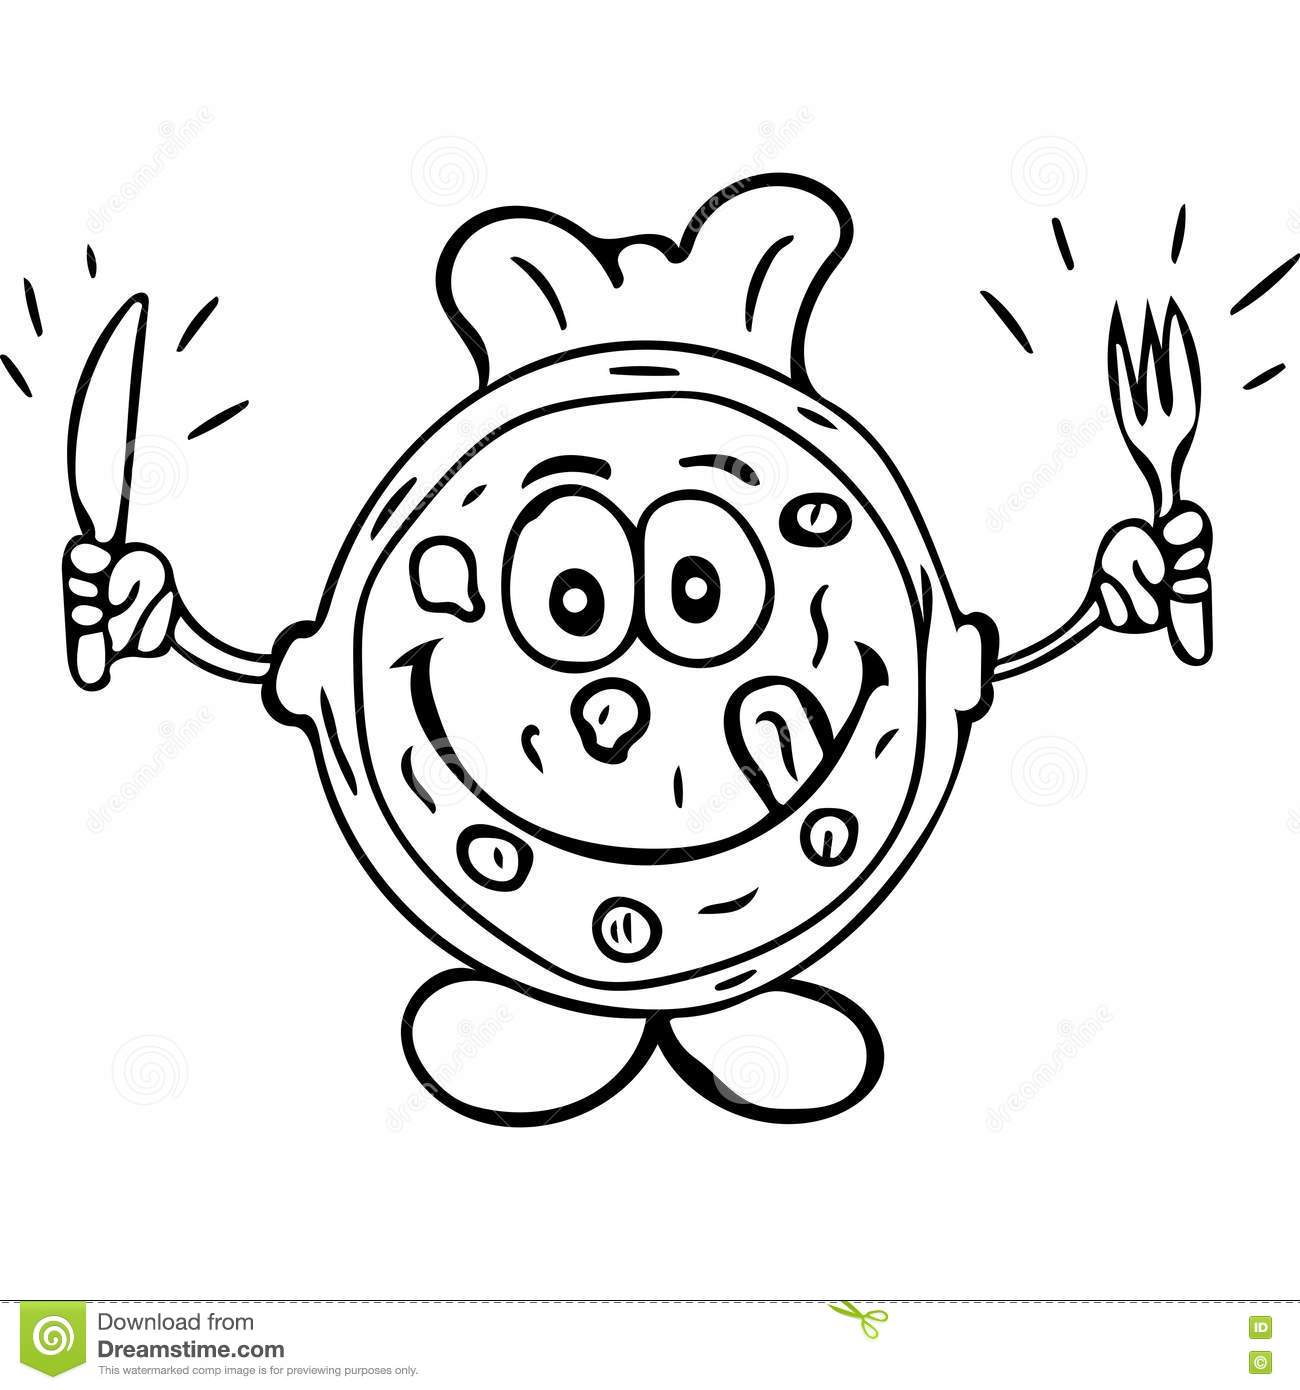 tasty pizza kids coloring page stock photo - Pizza Coloring Pages